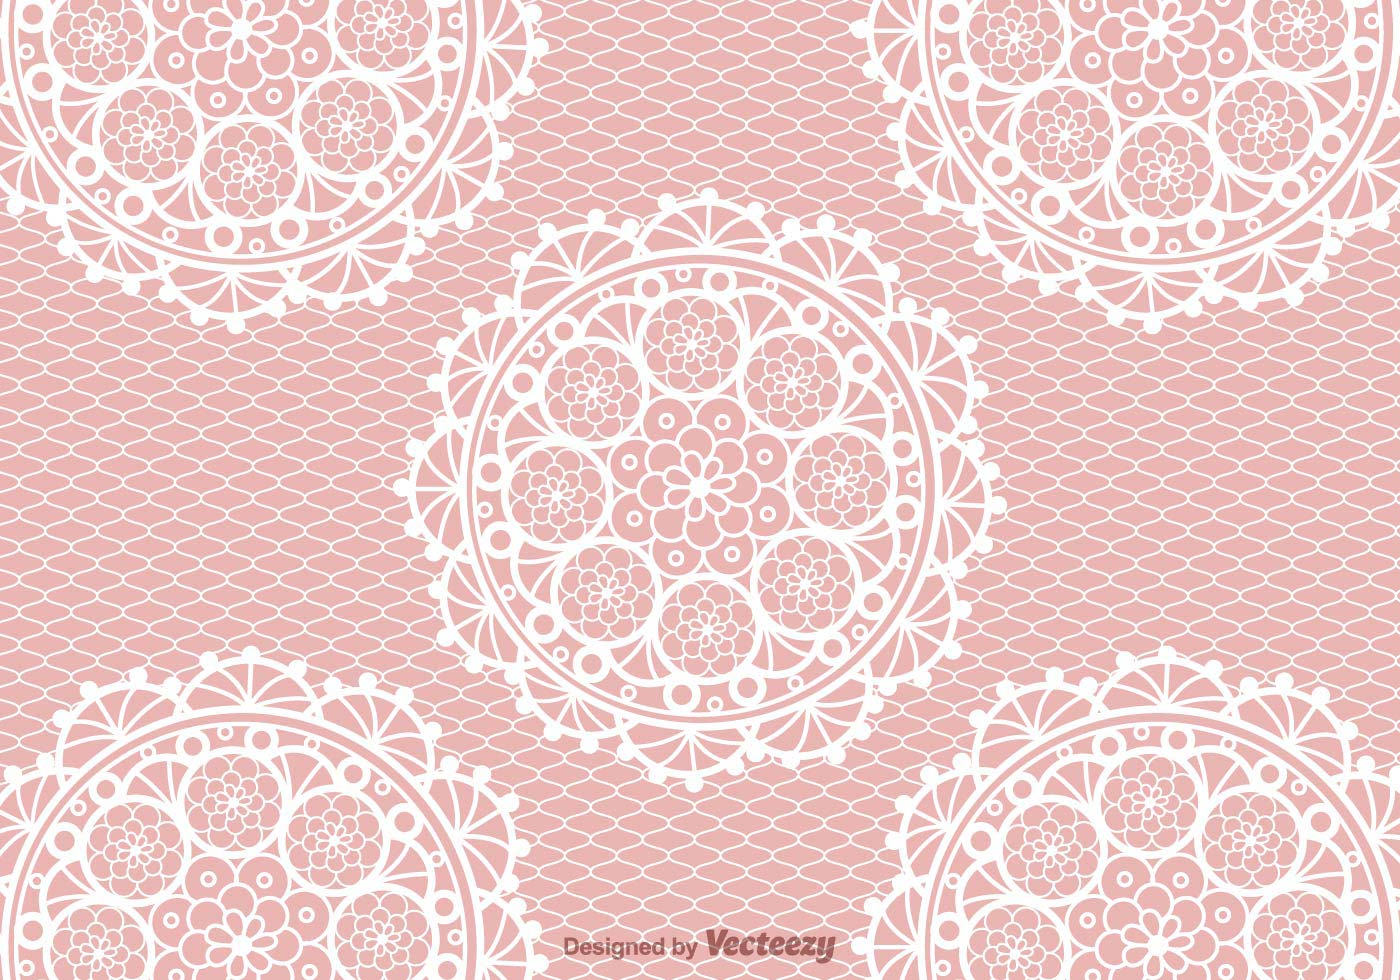 Free Crochet Lace Vector Background Download Free Vector